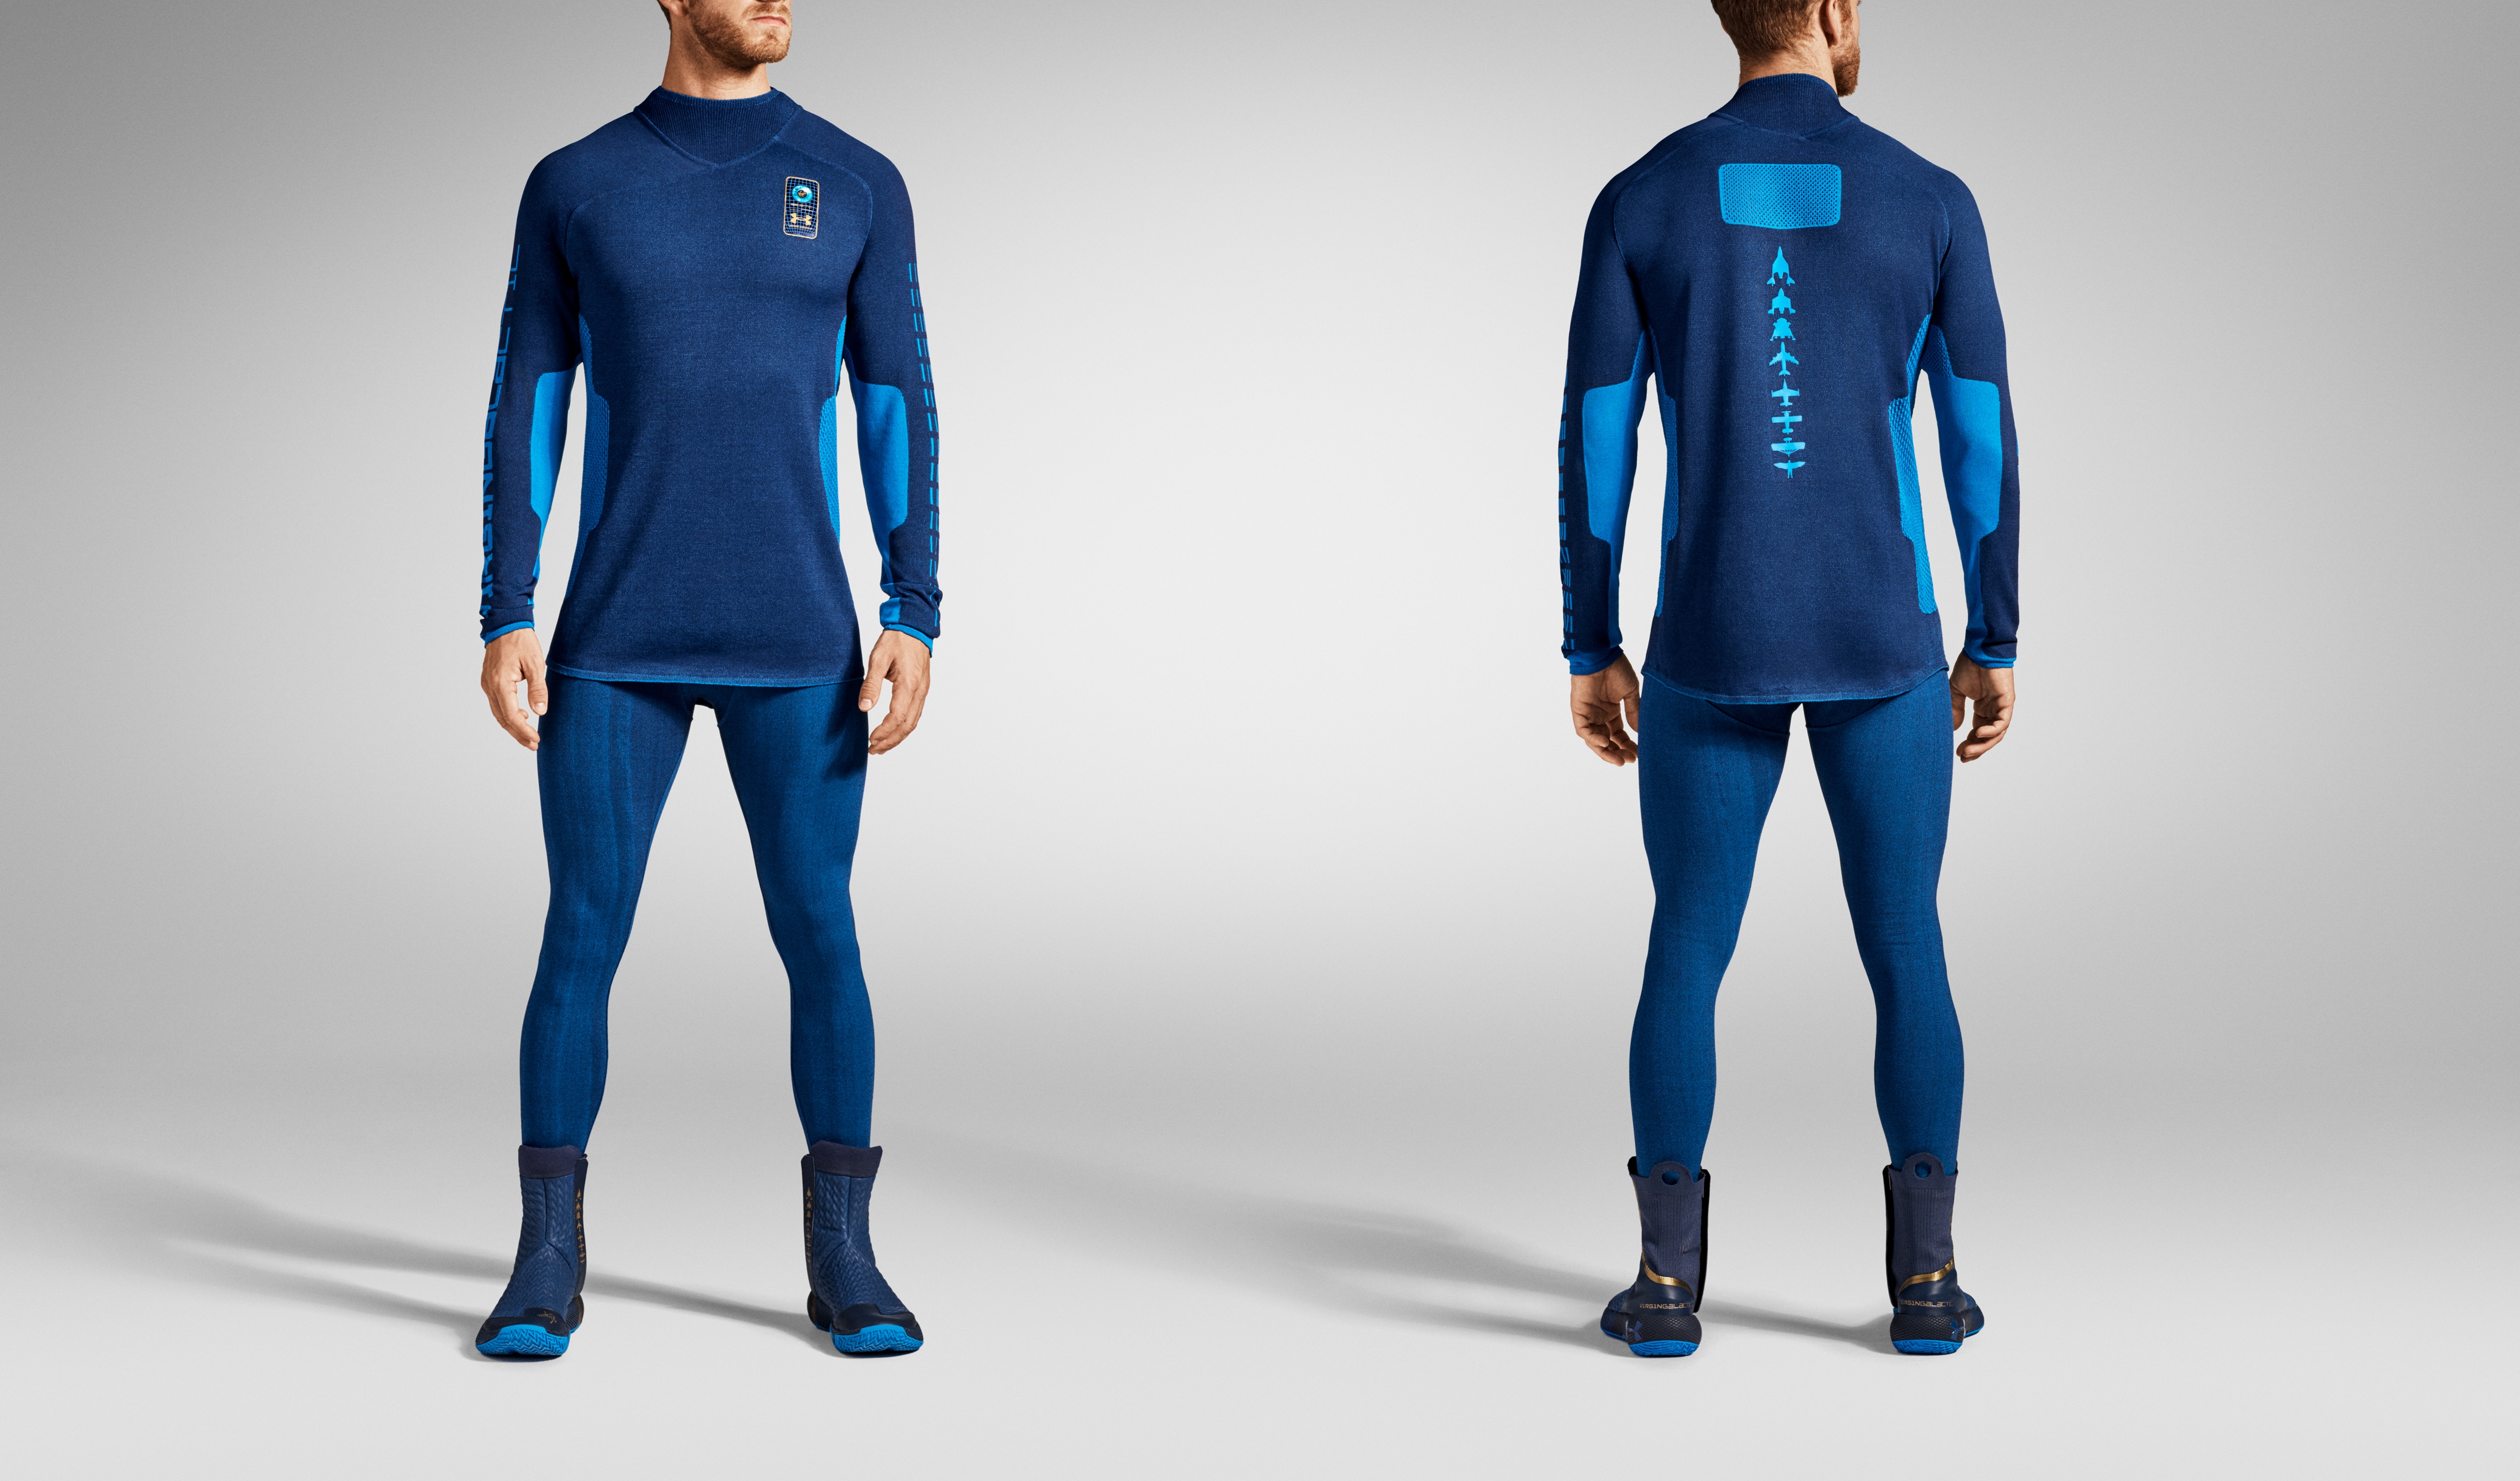 A model wears the base layers of the Under Armour space suit.